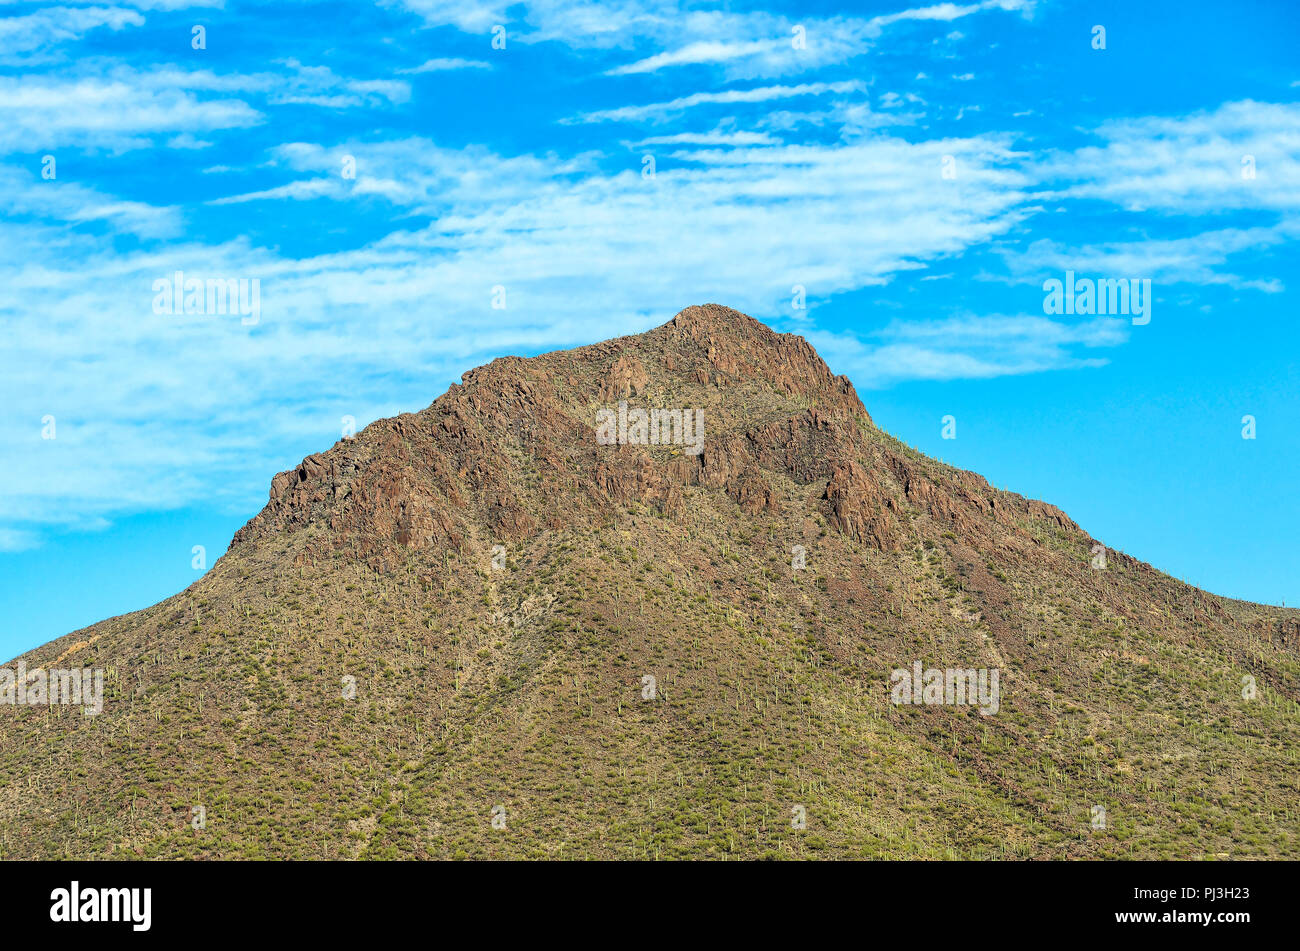 Mostly barren mountain peak under bright blue sky with fluffy white clouds. - Stock Image